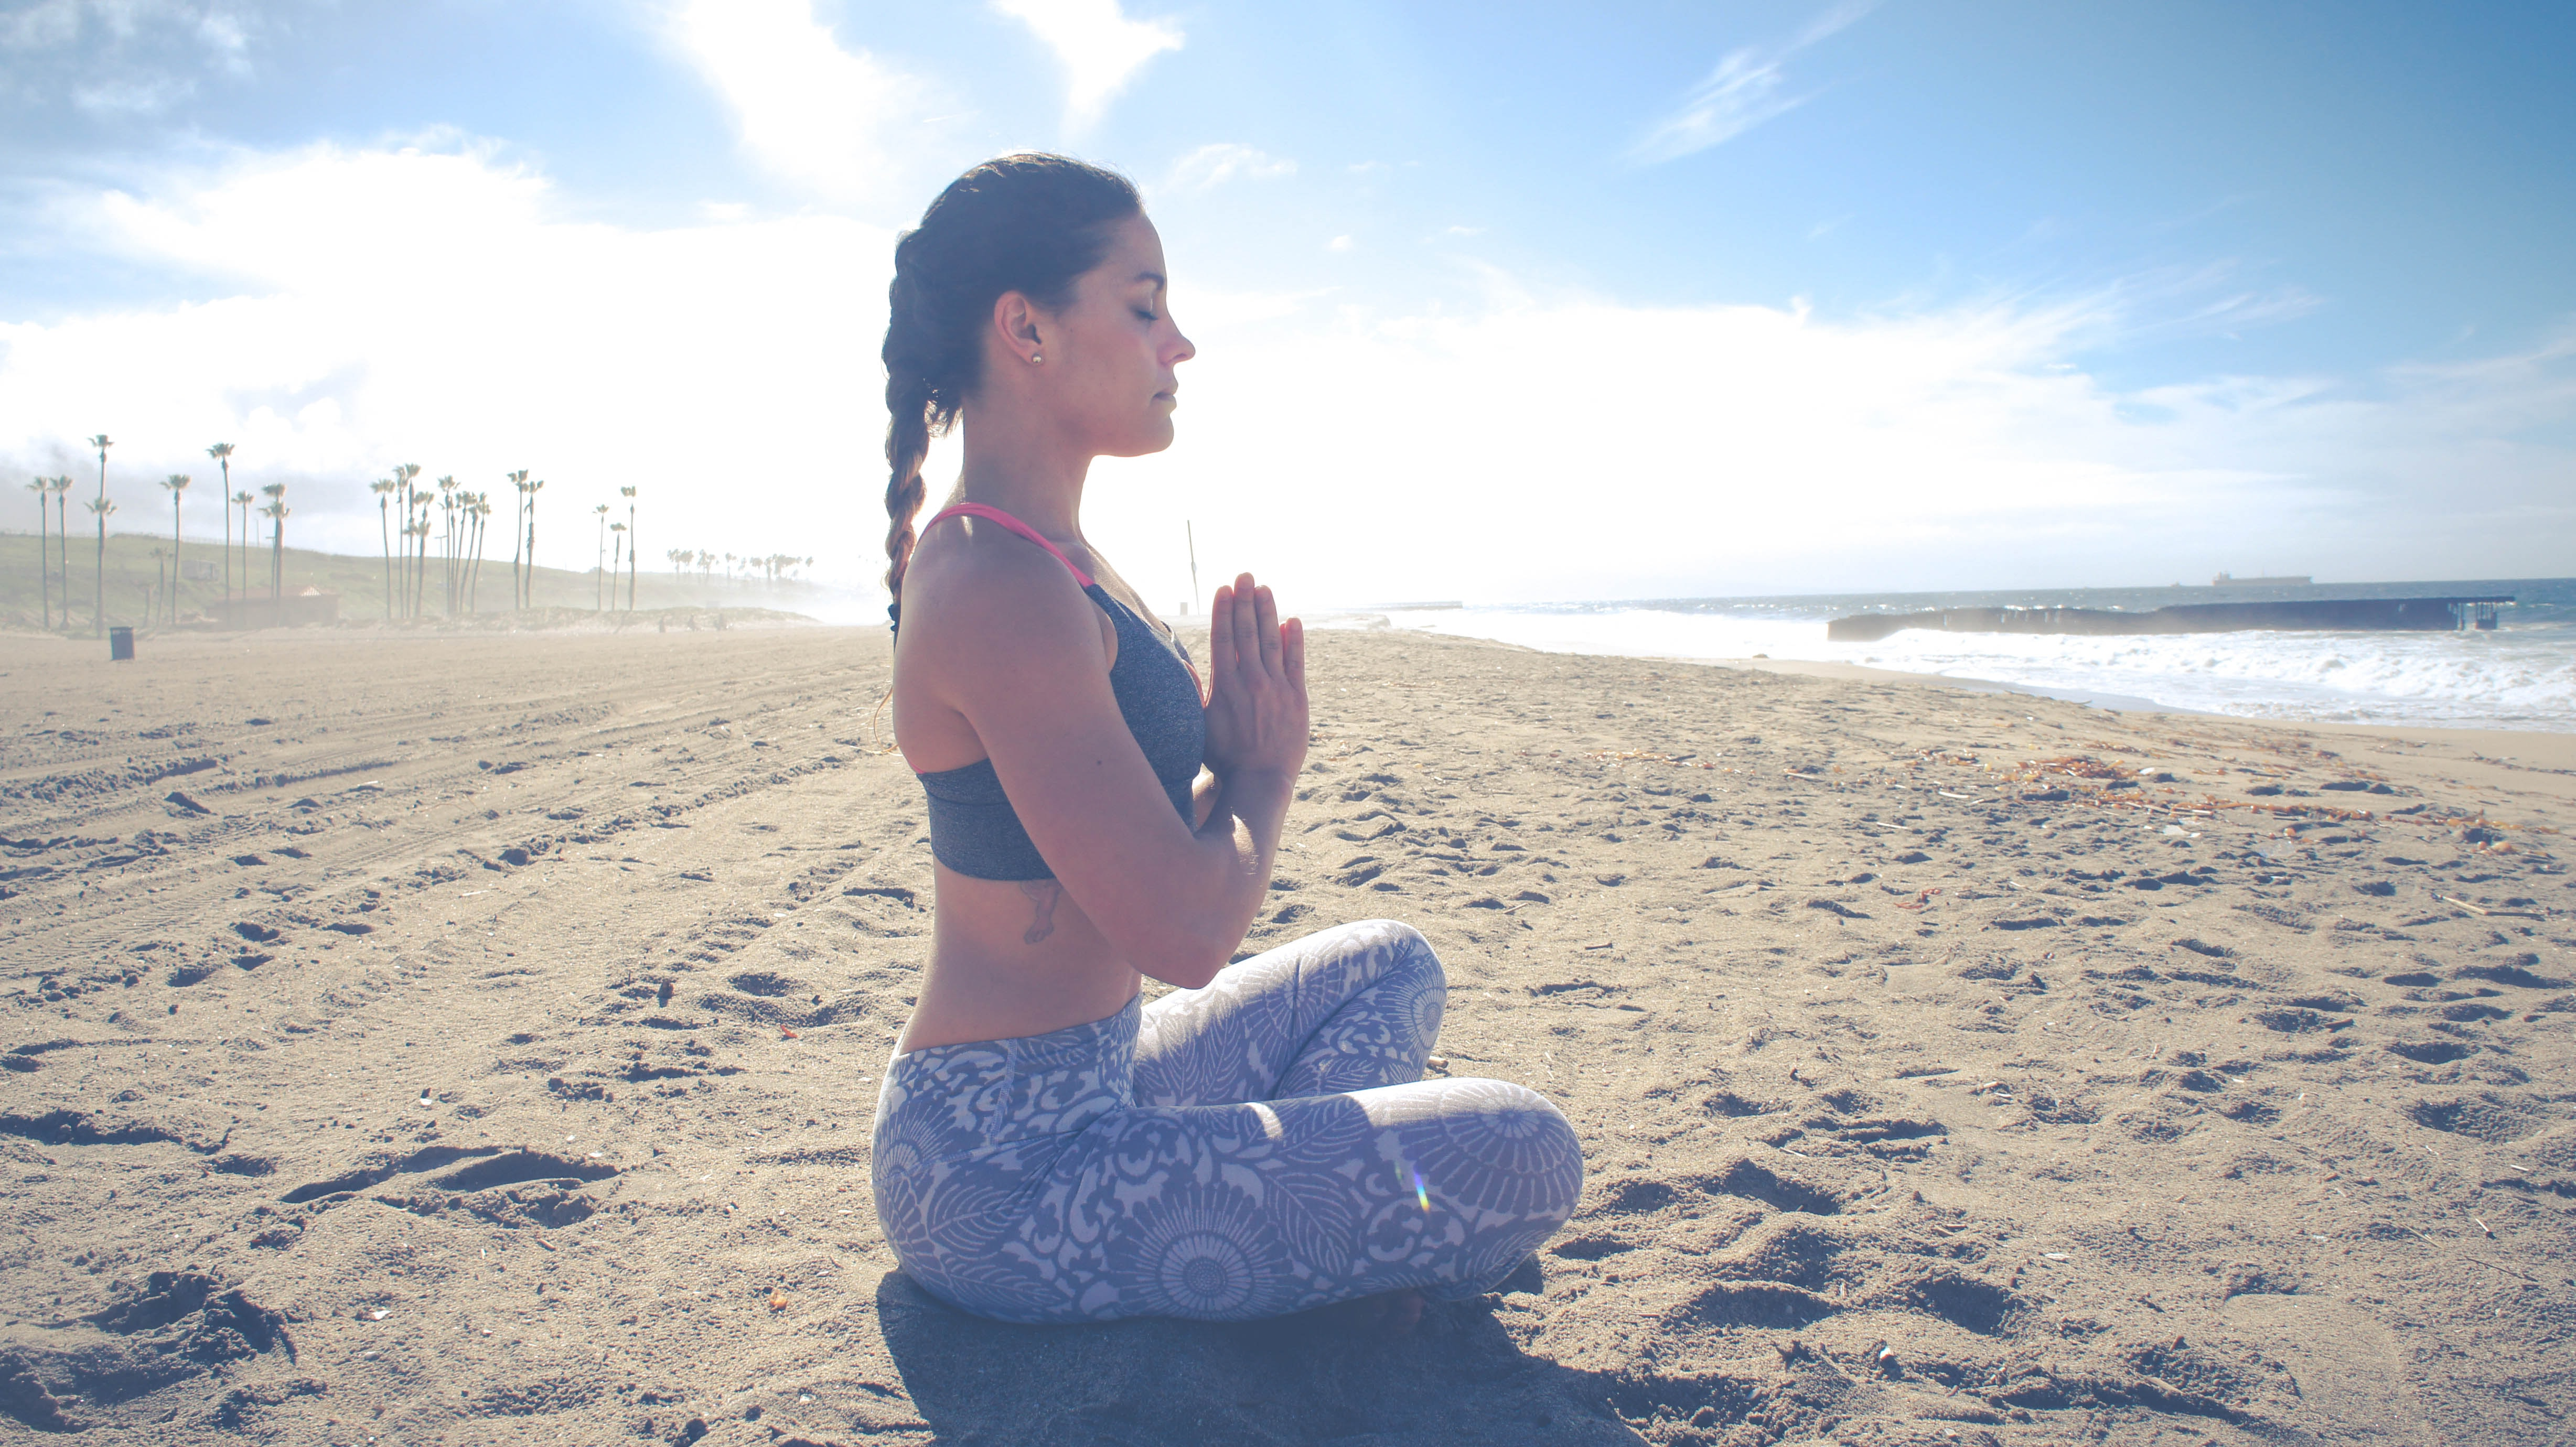 A woman in yoga pants sitting and meditating at the beach.